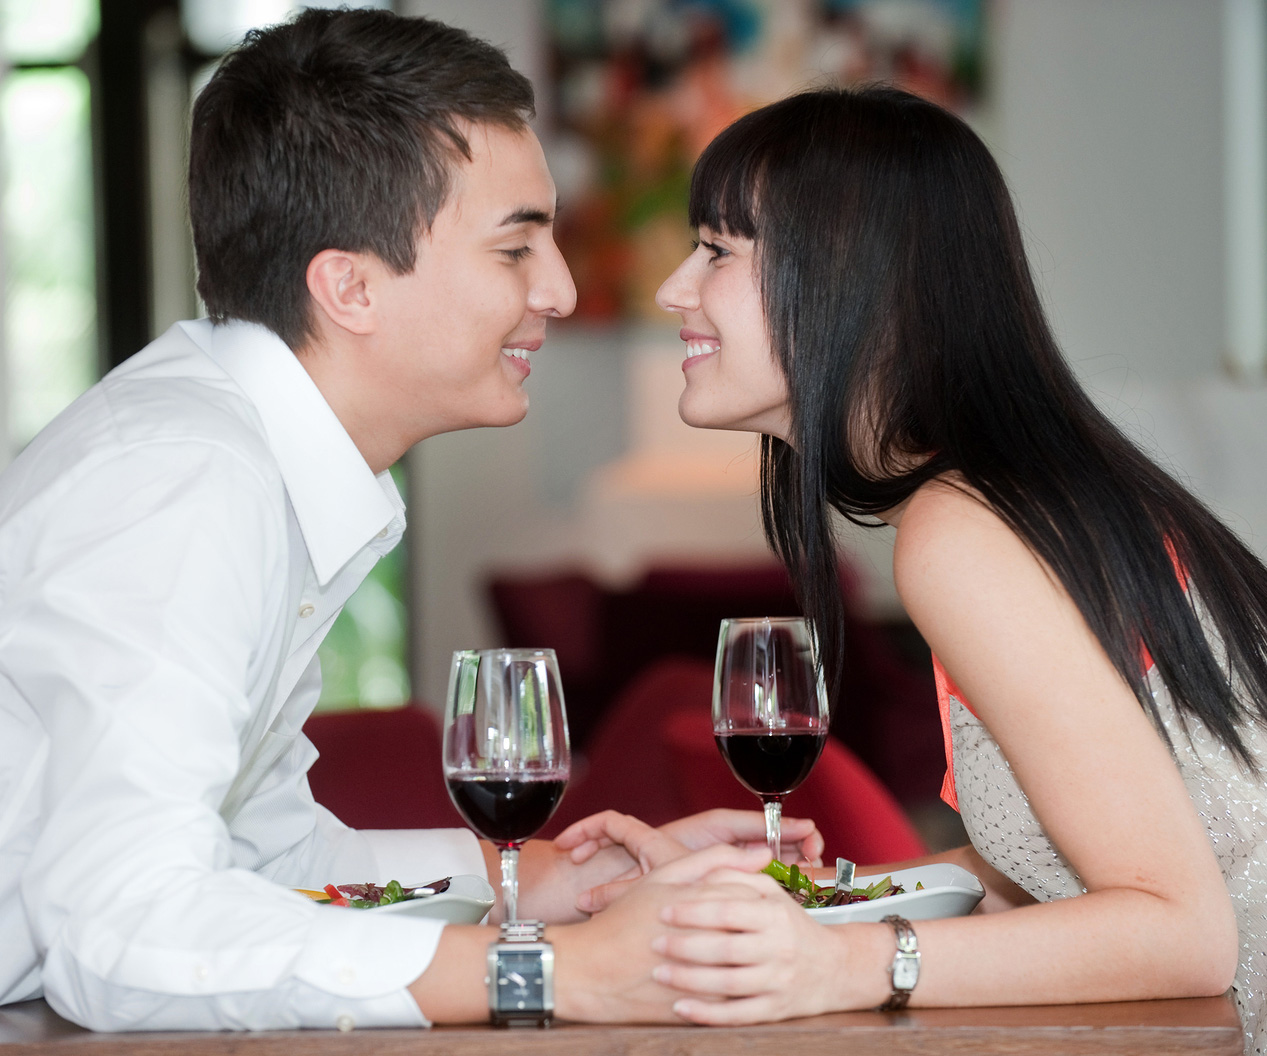 la singles speed dating Speed dating in new york skinny minny, jewish dates, asian women, latin singles, cougars & more check out or dating events, networking mixers & rooftop parties.